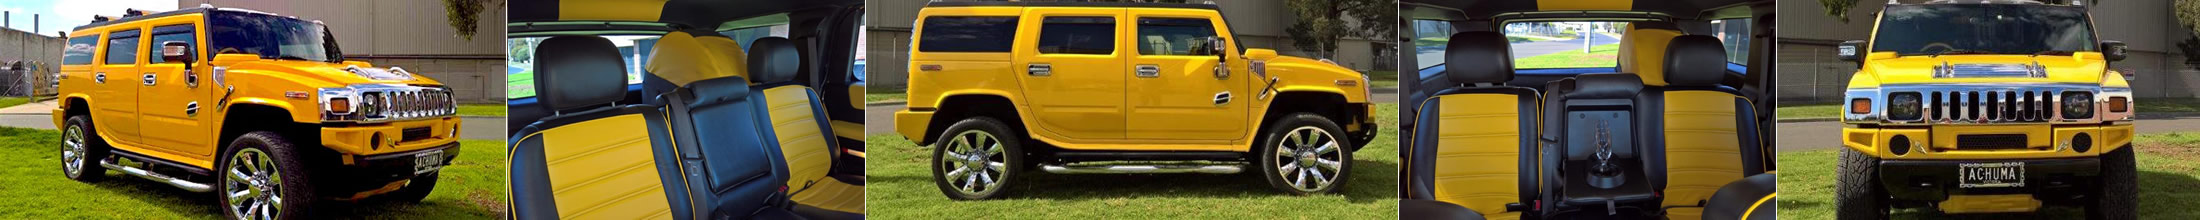 The Tiger Yellow Hummer